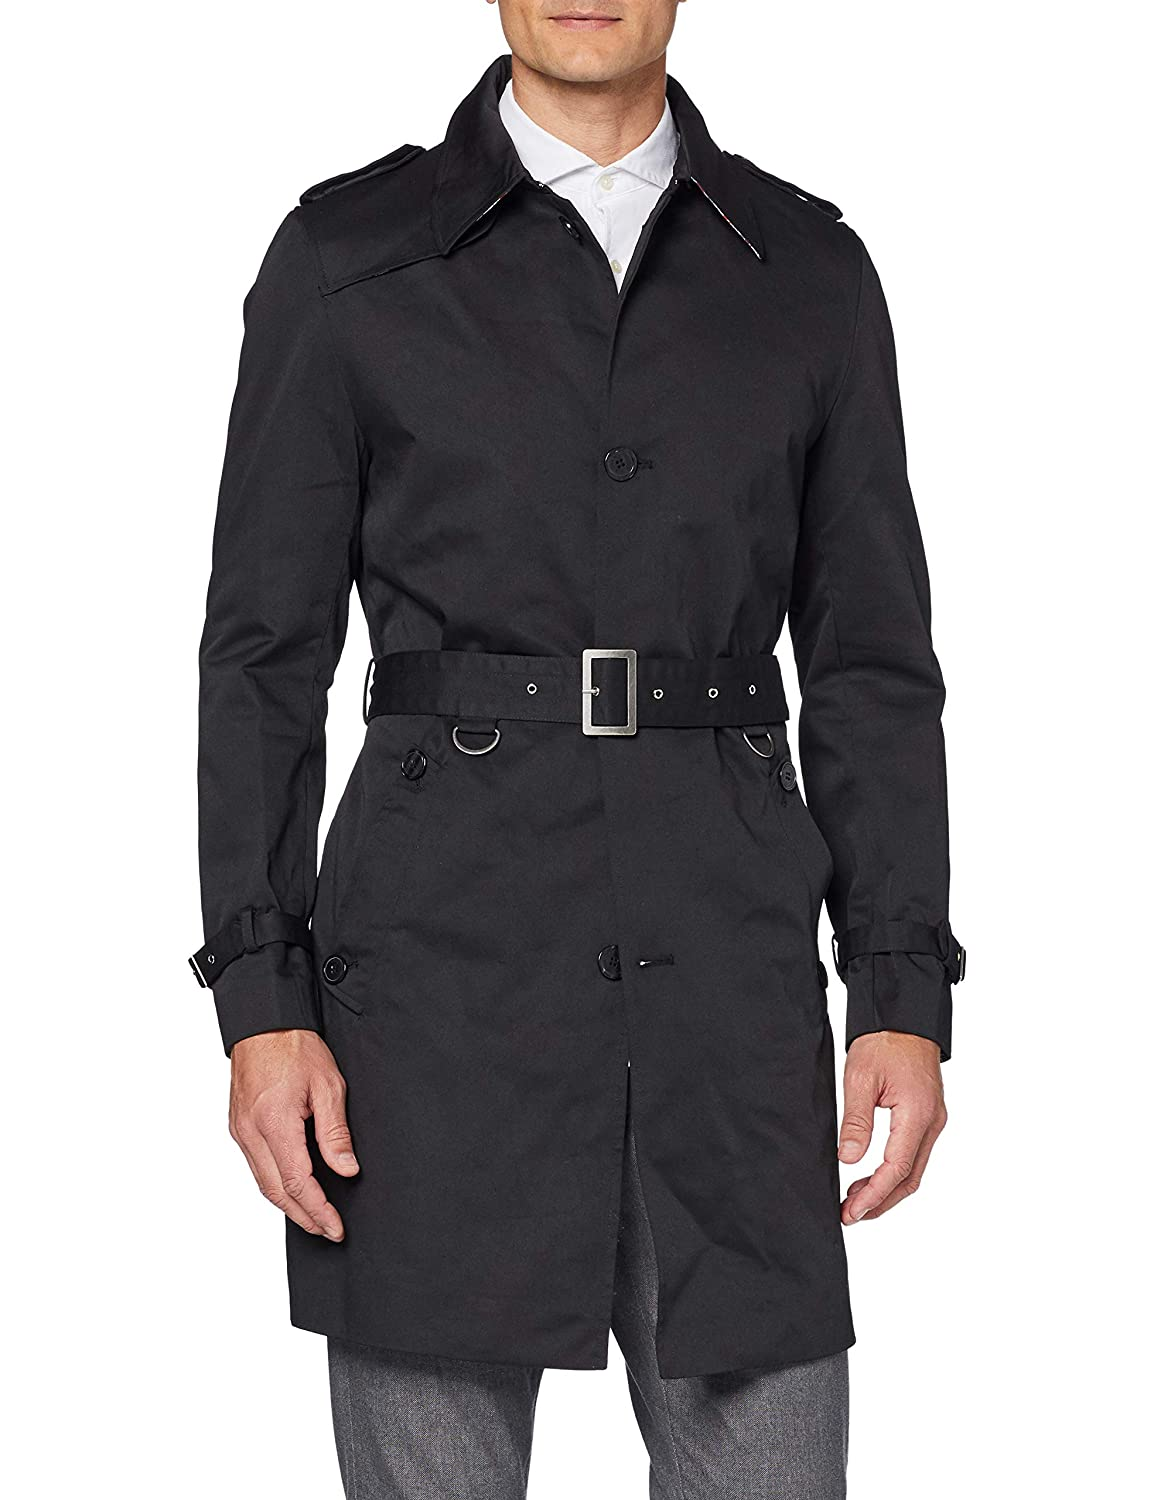 The Platinum Tailor - Chaqueta Impermeable - para Hombre